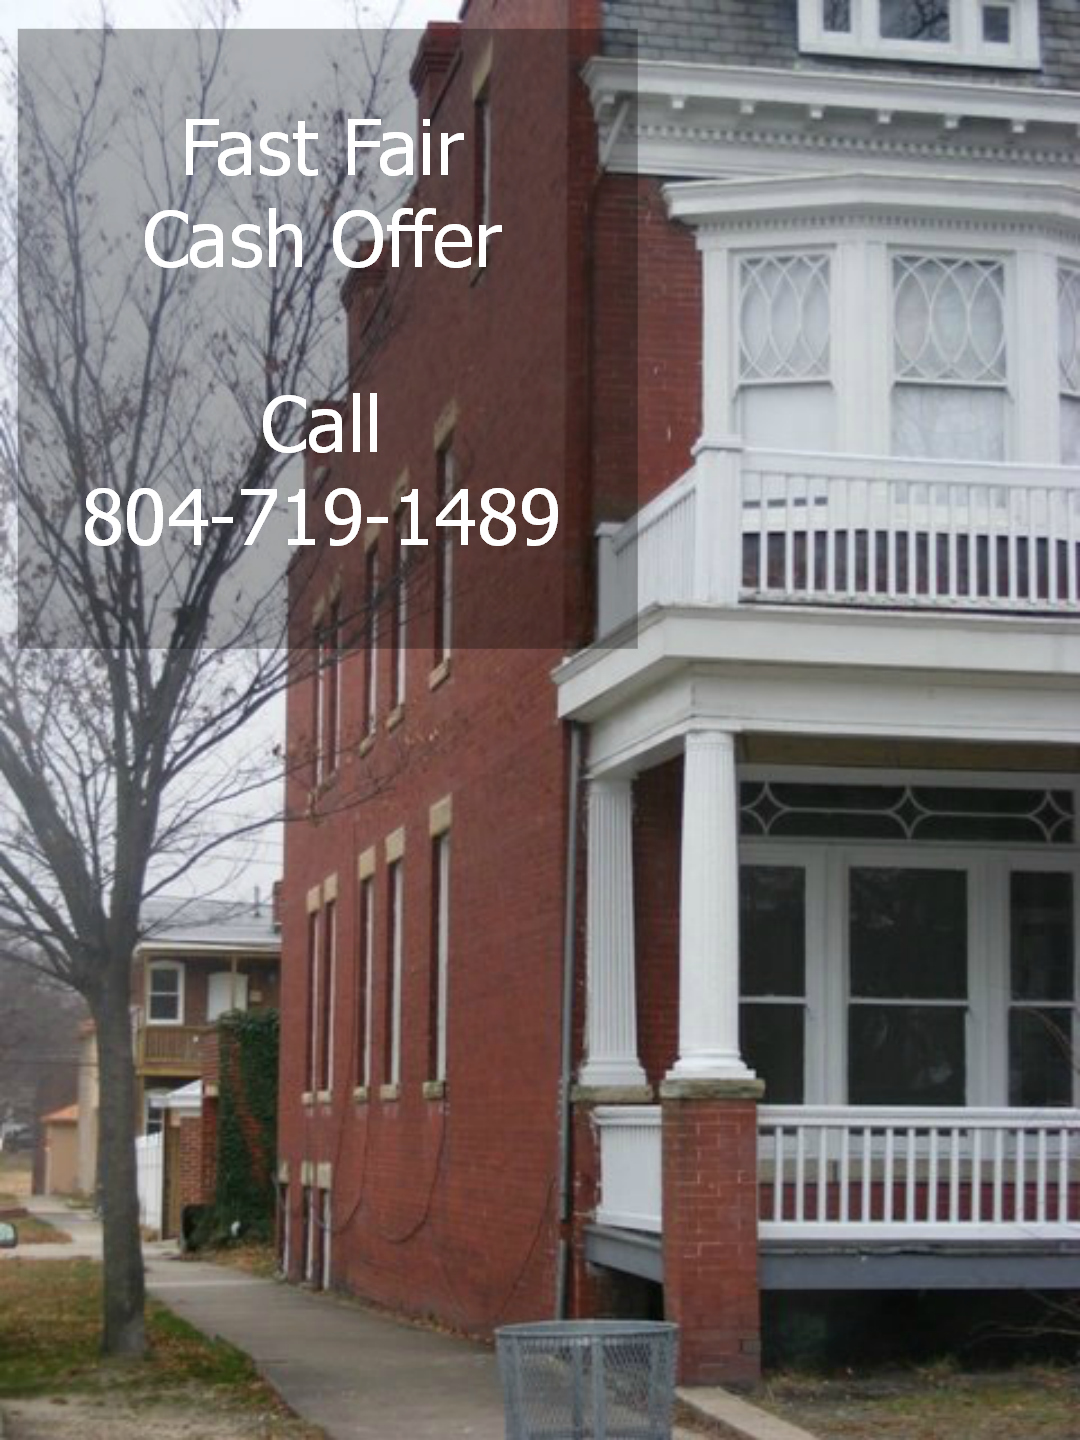 how to write a cash offer on a house